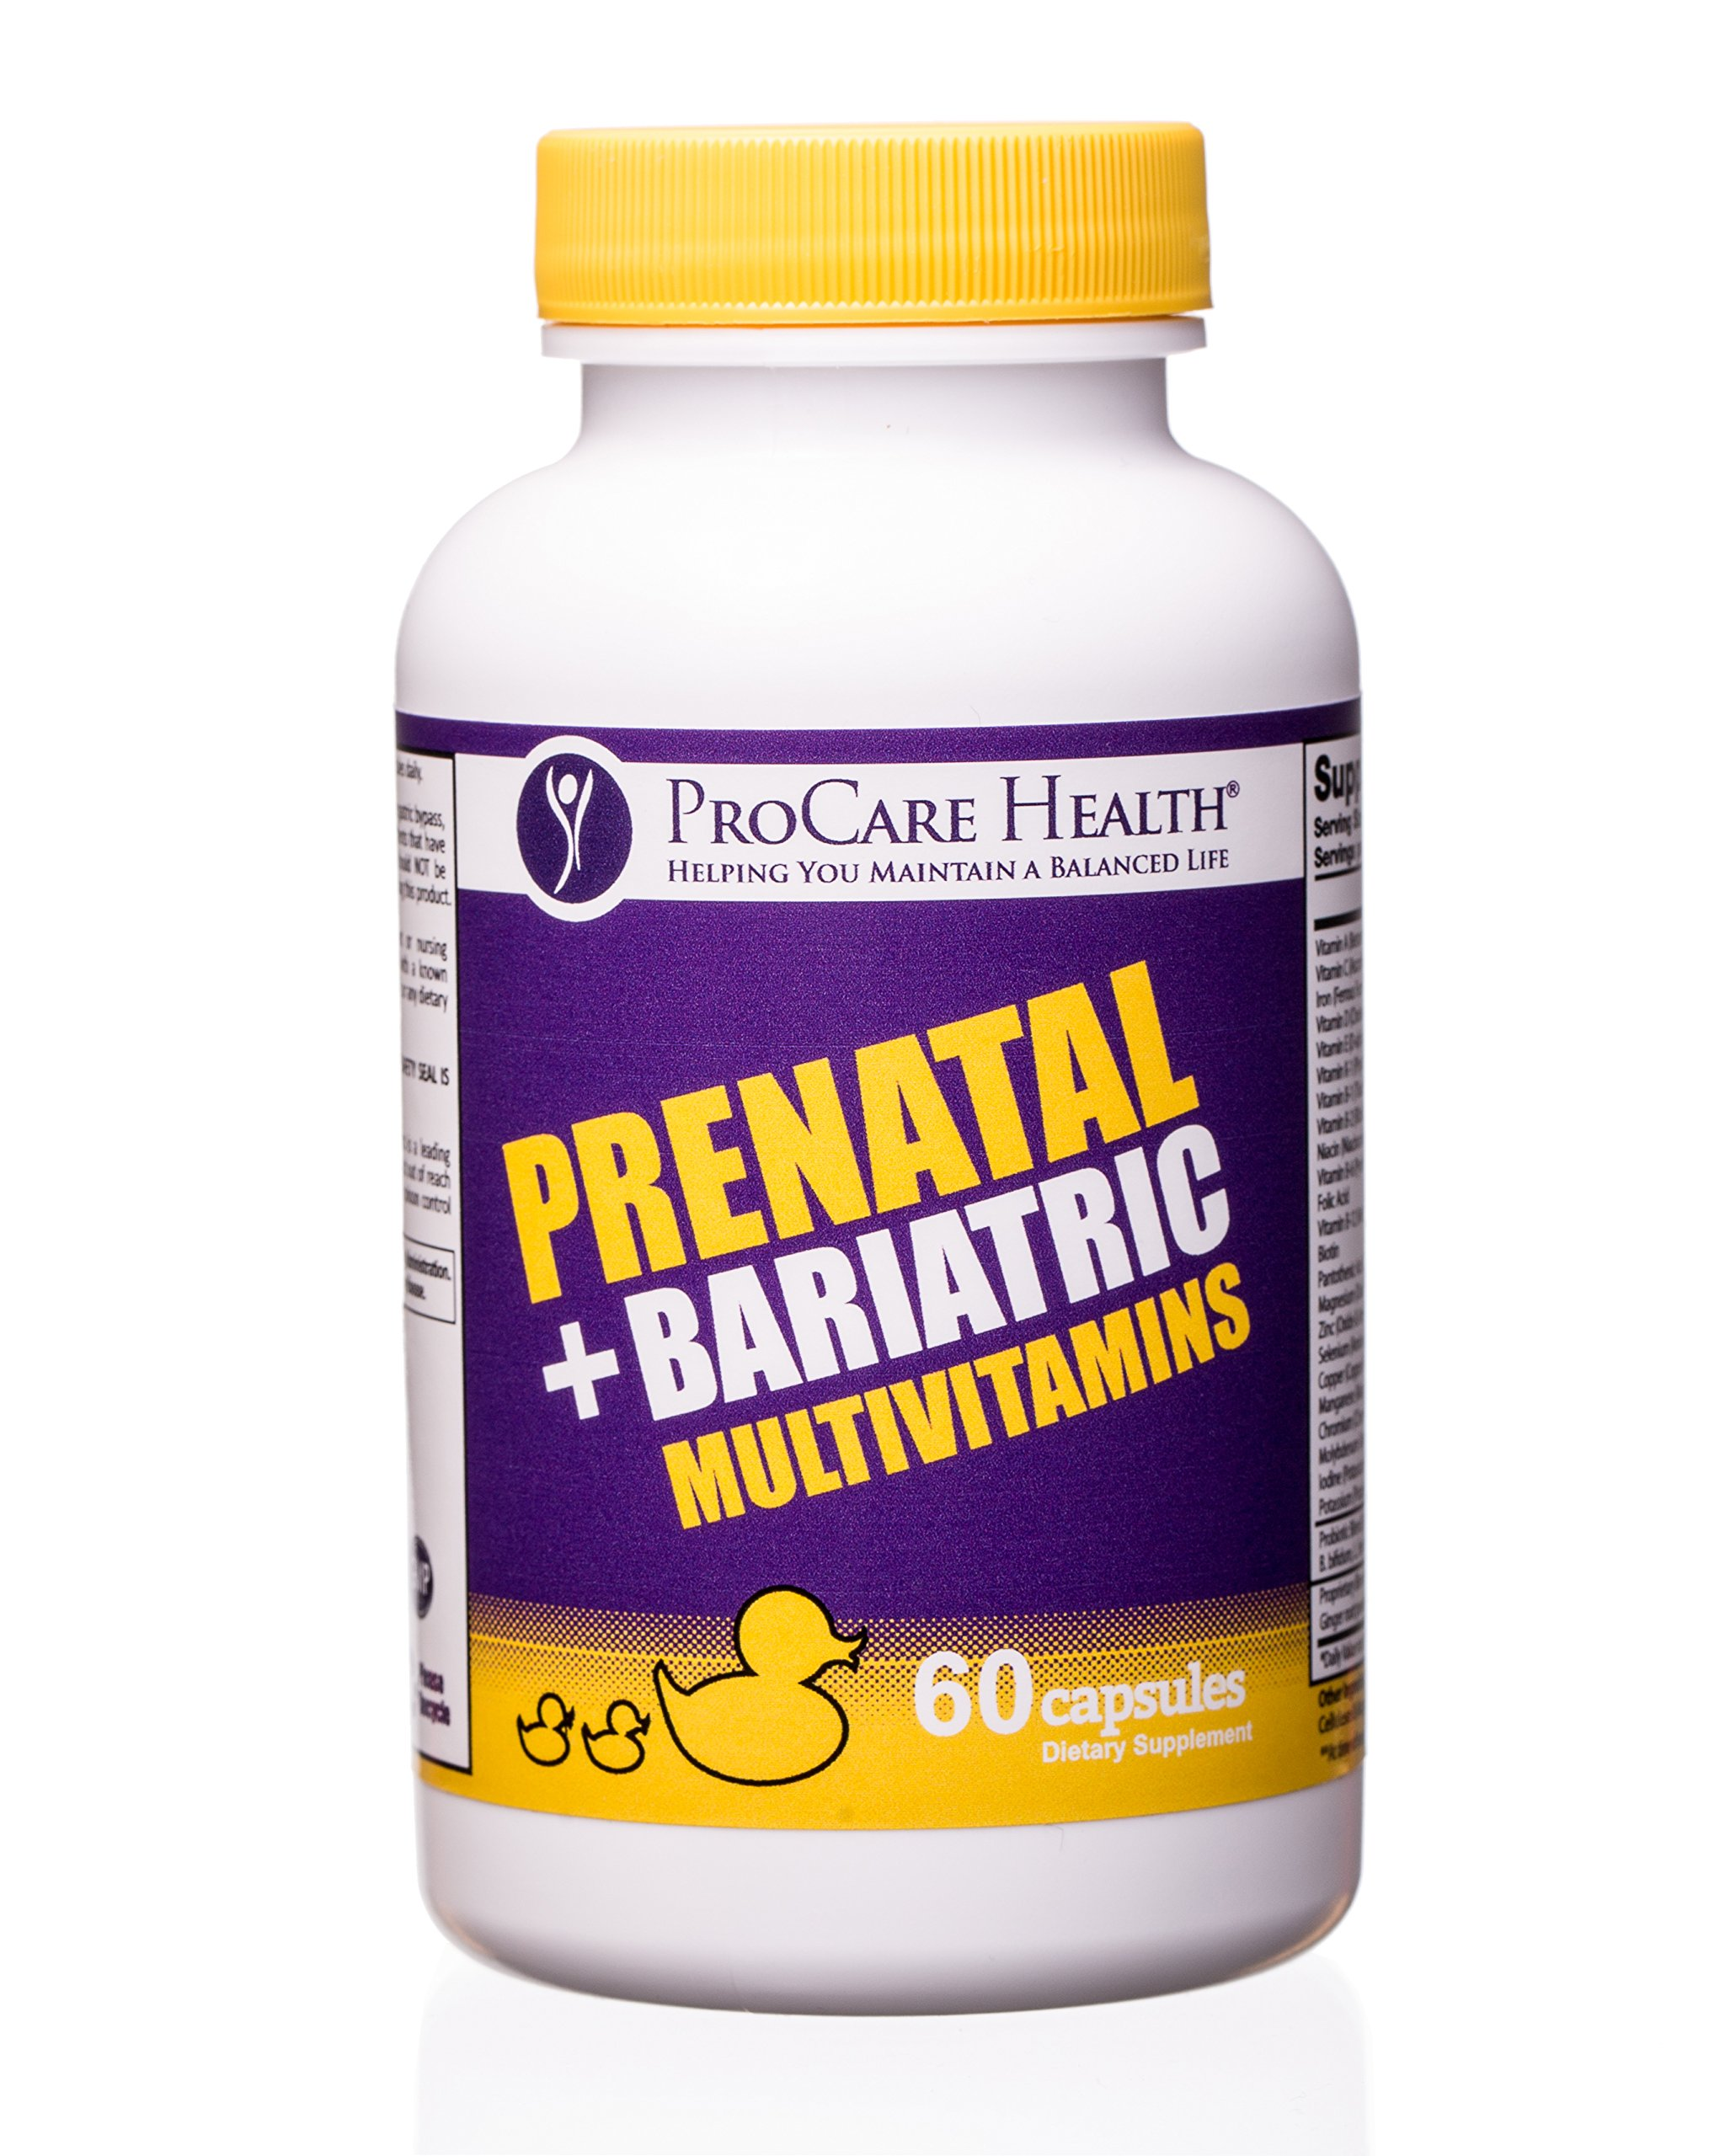 ProCare Health Prenatal + Bariatric Multivitamin 60ct-1 Month Supply